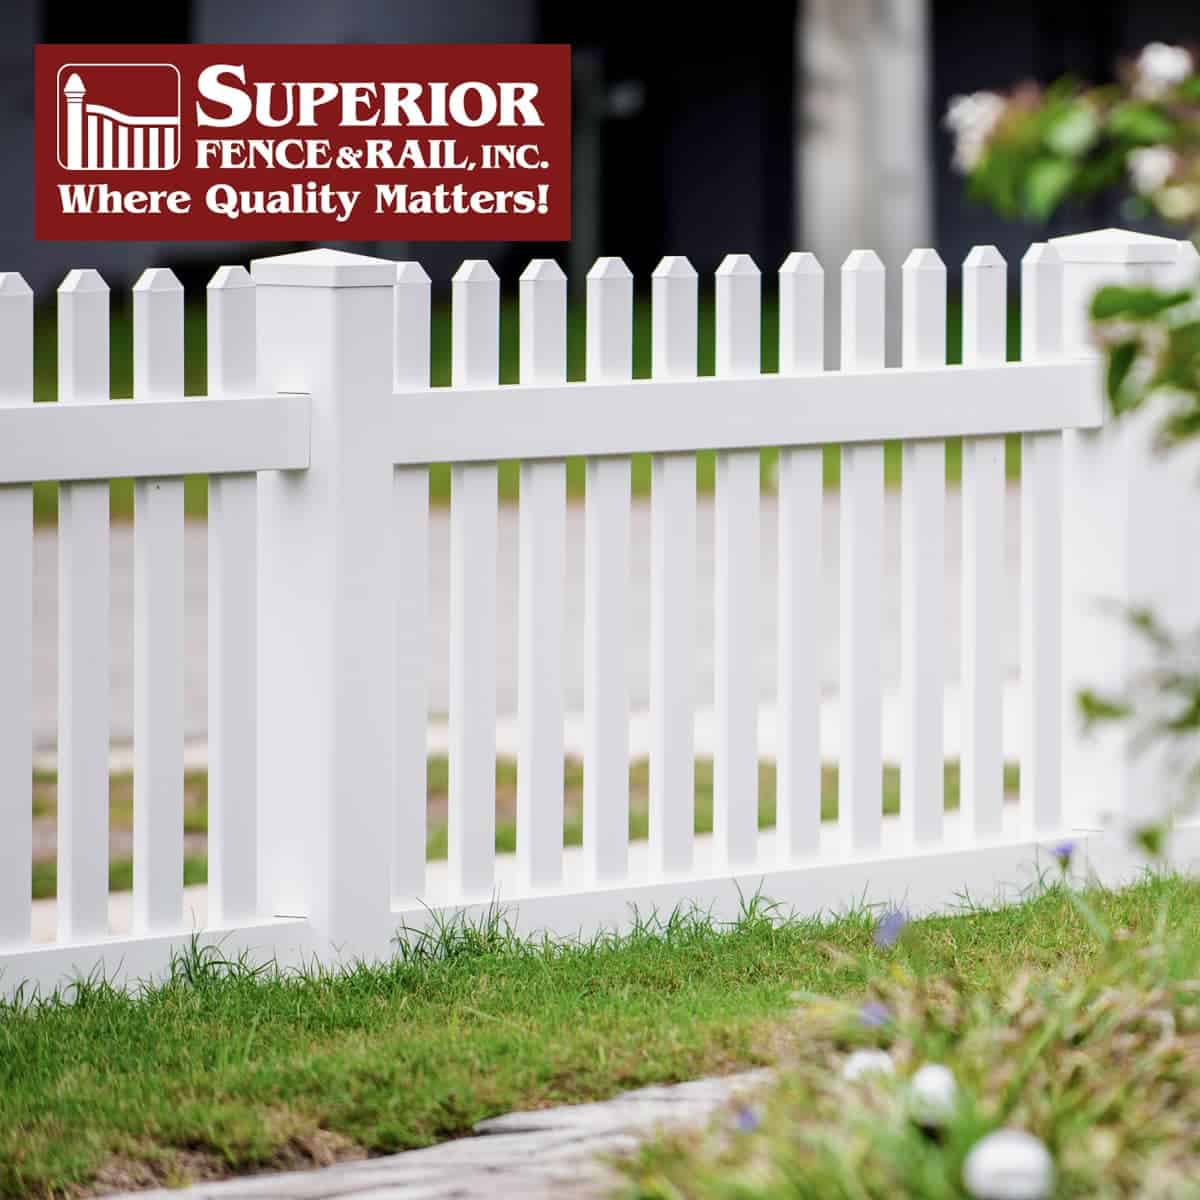 https://www.superiorfenceandrail.com/wp-content/uploads/2020/12/Thornton-Fence-Company-Contractor.jpg